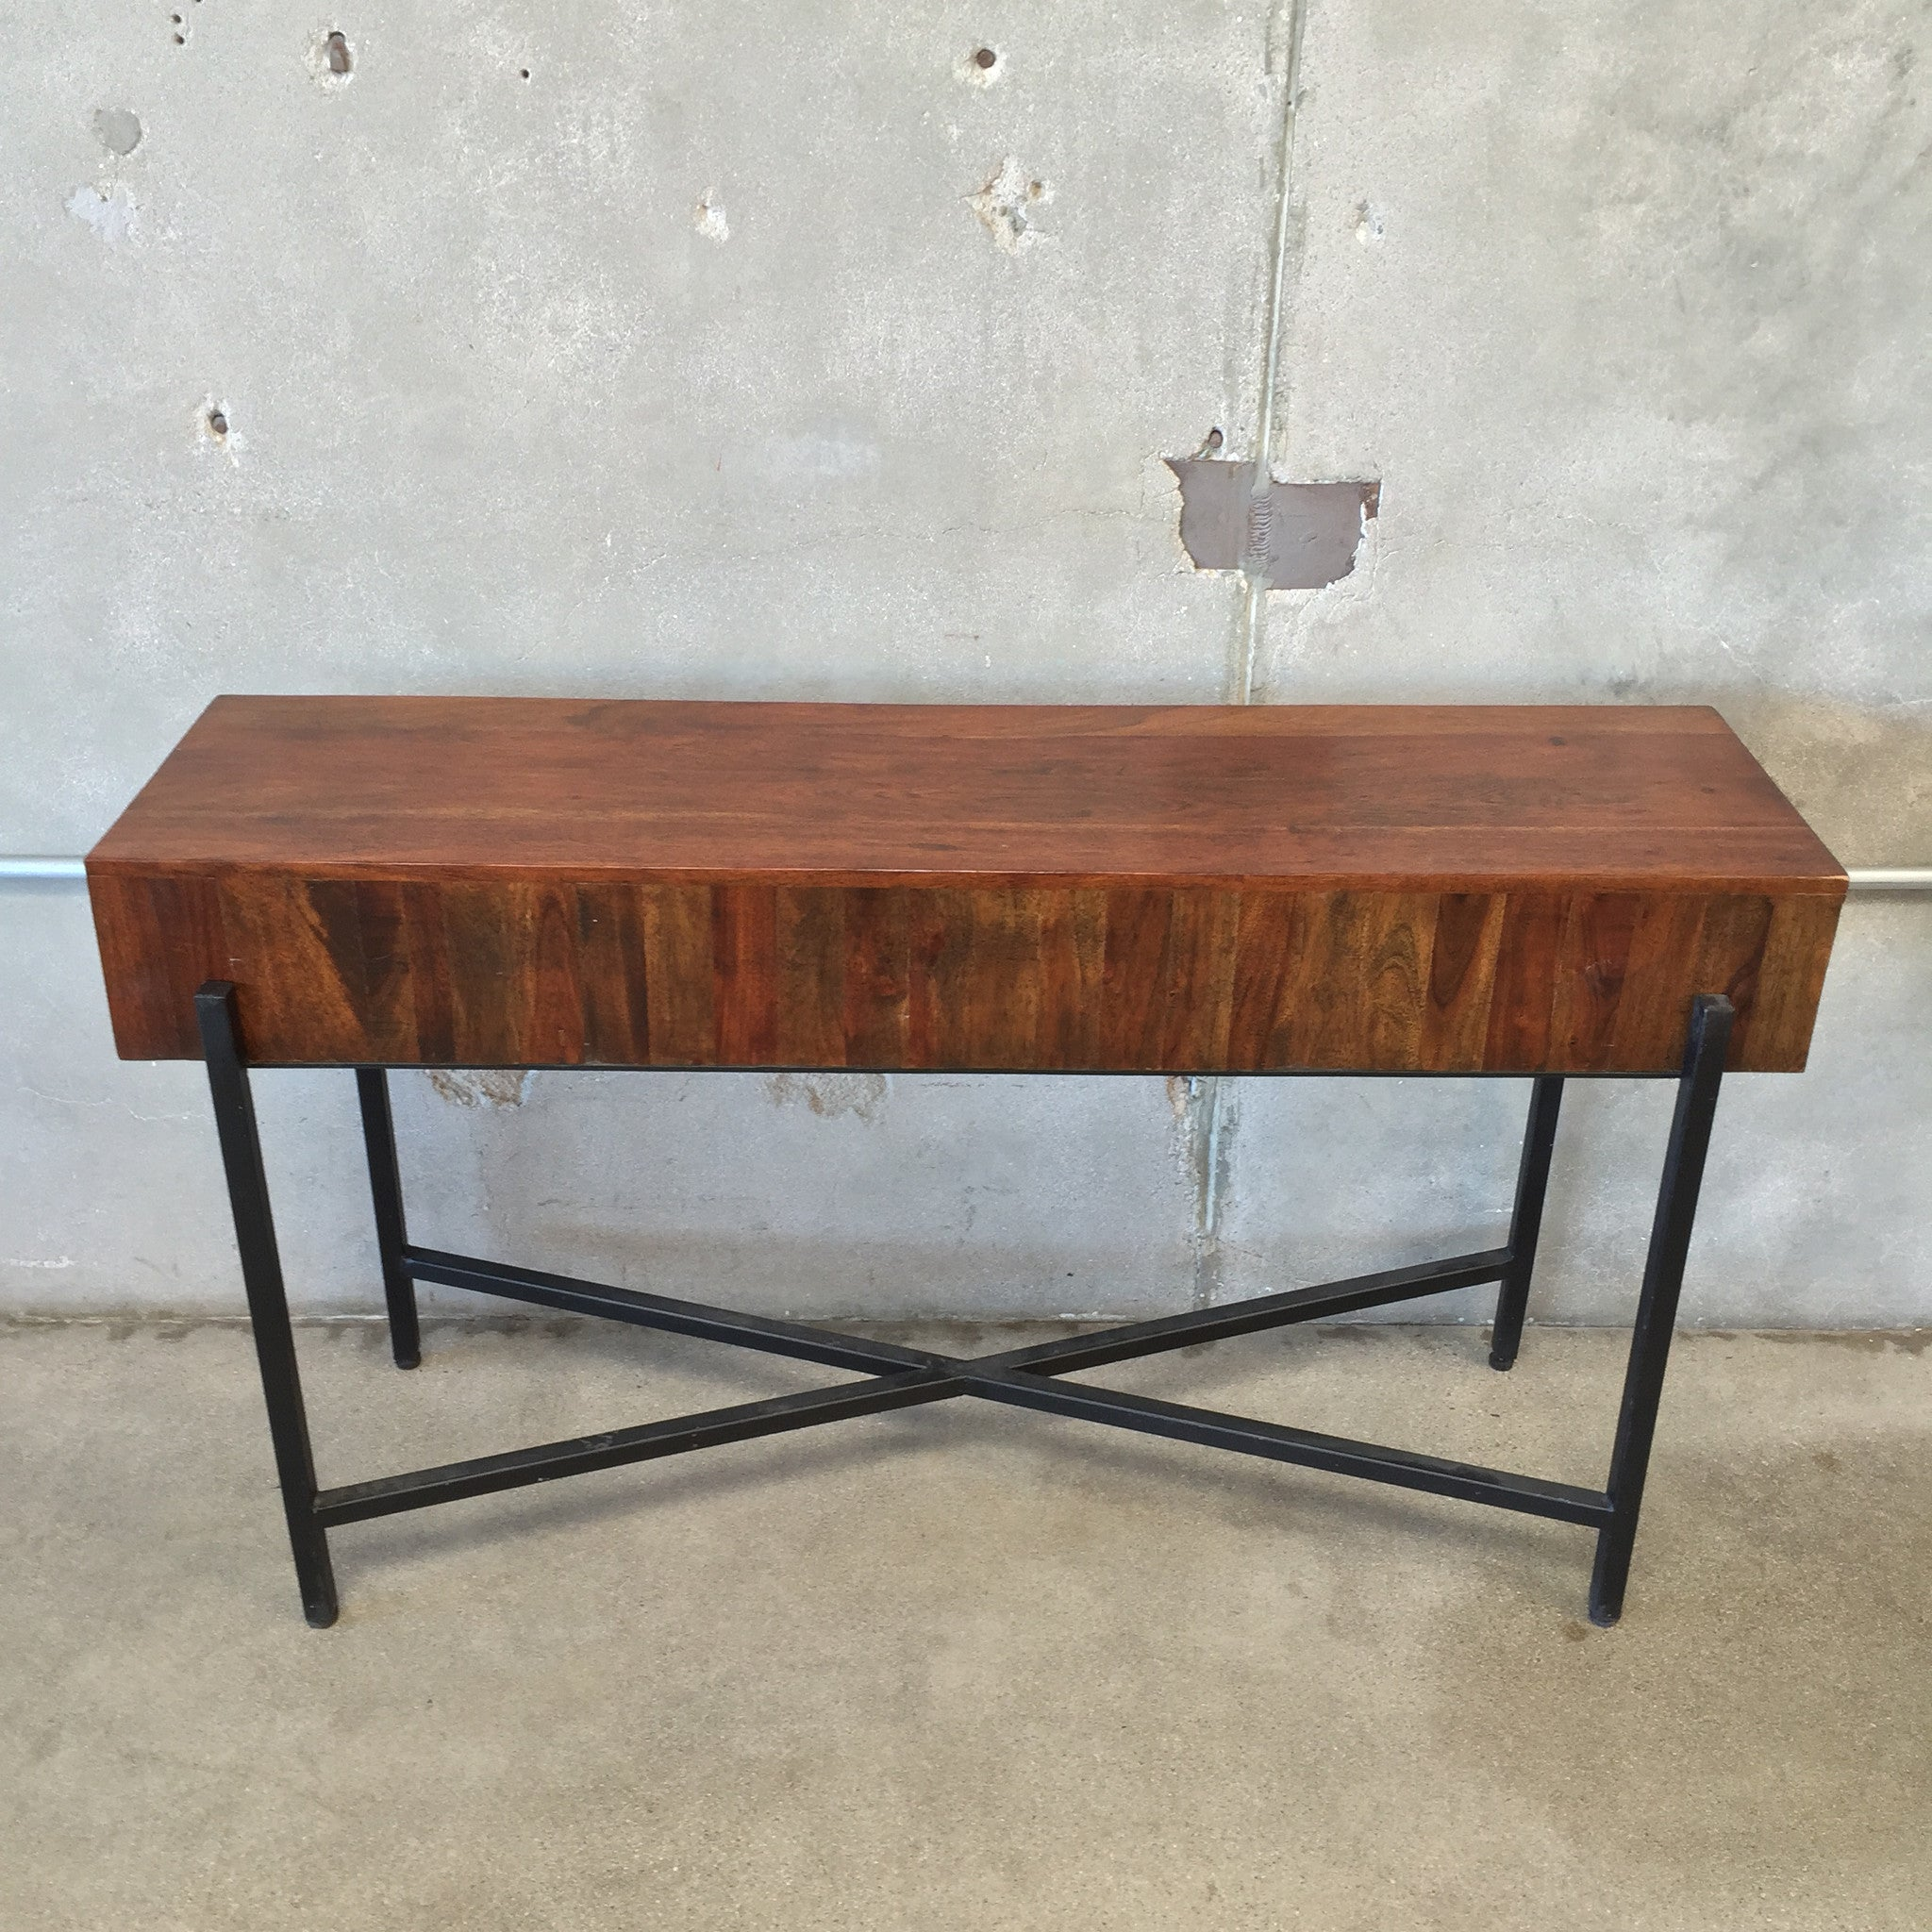 Wooden Sofa Table with Metal Frame – UrbanAmericana